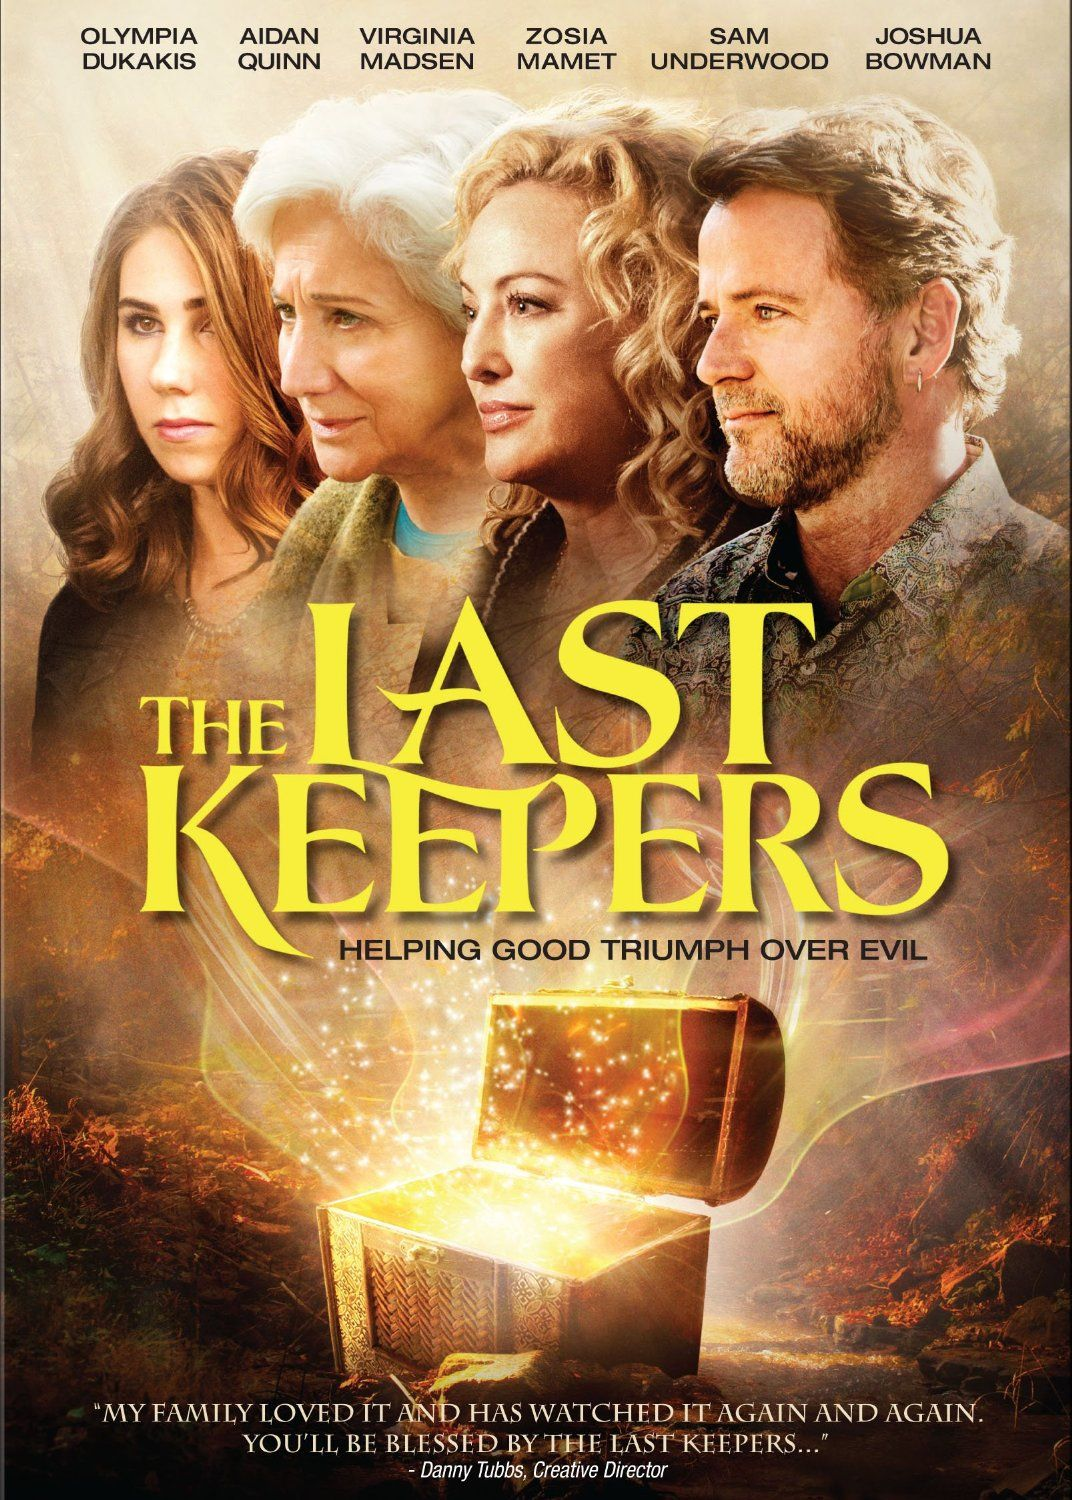 The Last Keepers The Colors Were Amazing In This Movie